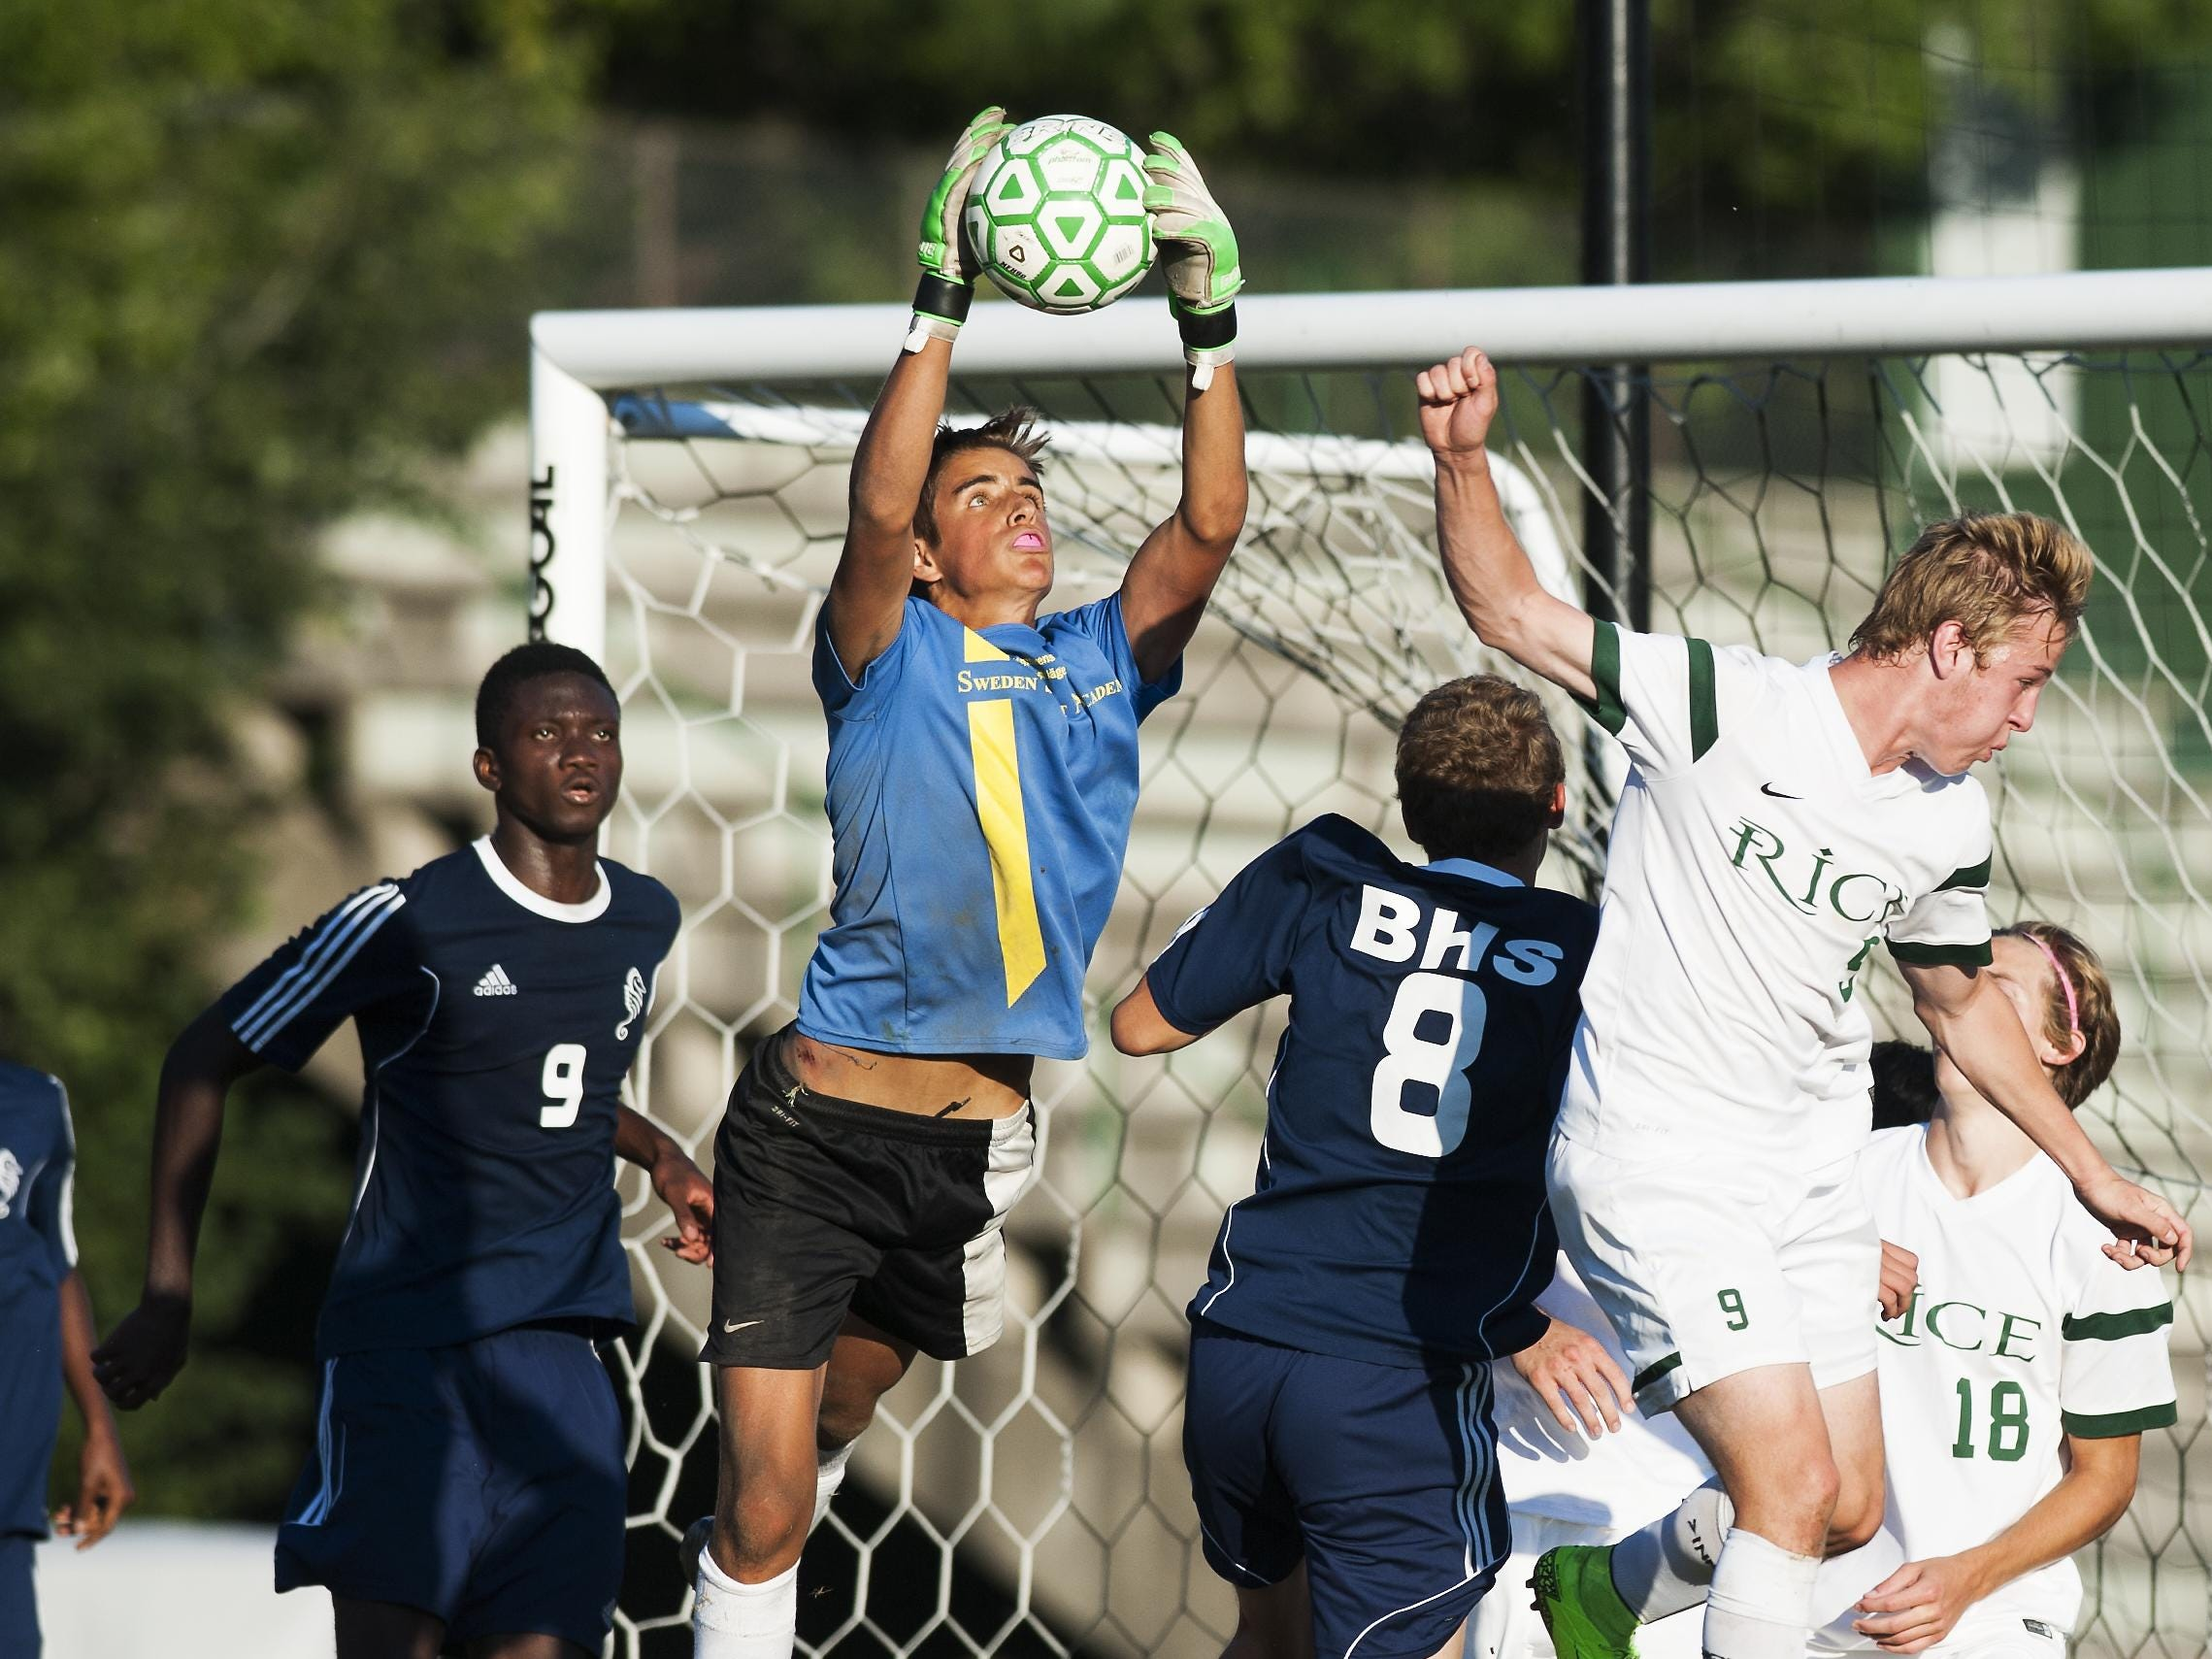 Burlington goalie Niels Arentzen leaps to catch the ball during the boys soccer game between the the Burlington Seahorses and the Rice Green Knights on Tuesday.